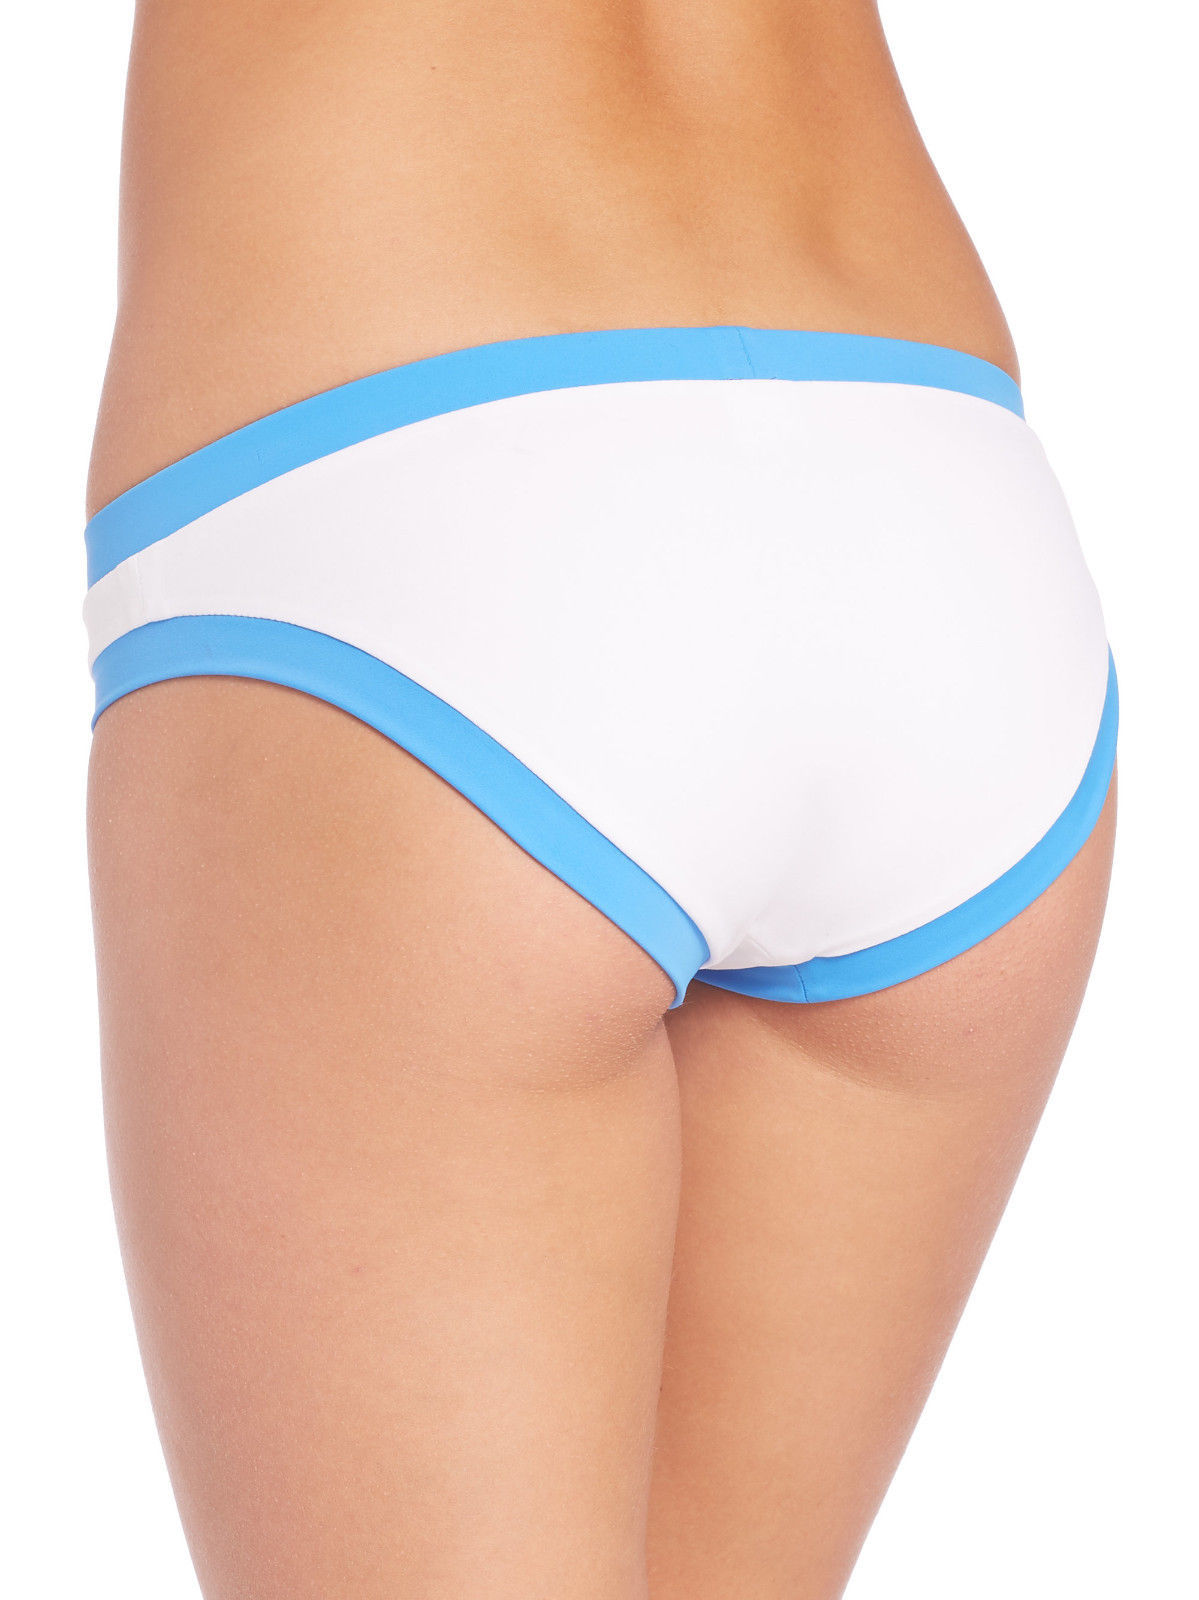 NEW Milly Cabana Amalfi Colorblock Surfer Bikini Swim Bottom L Large $95